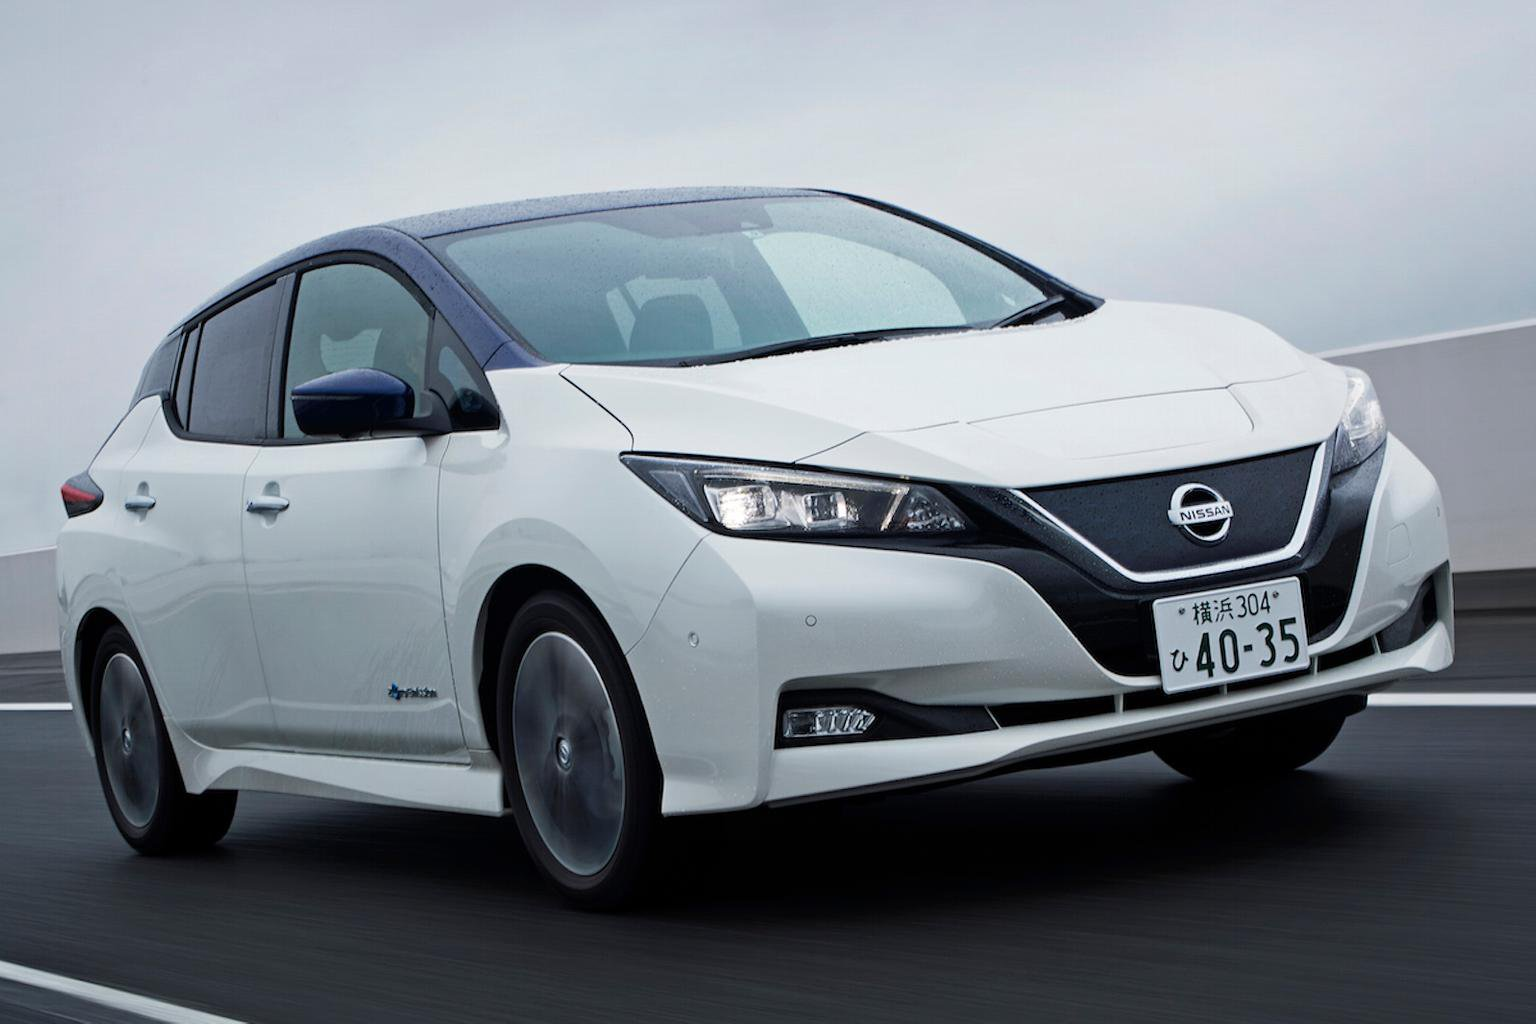 2017 Nissan Leaf review - price, specs and release date